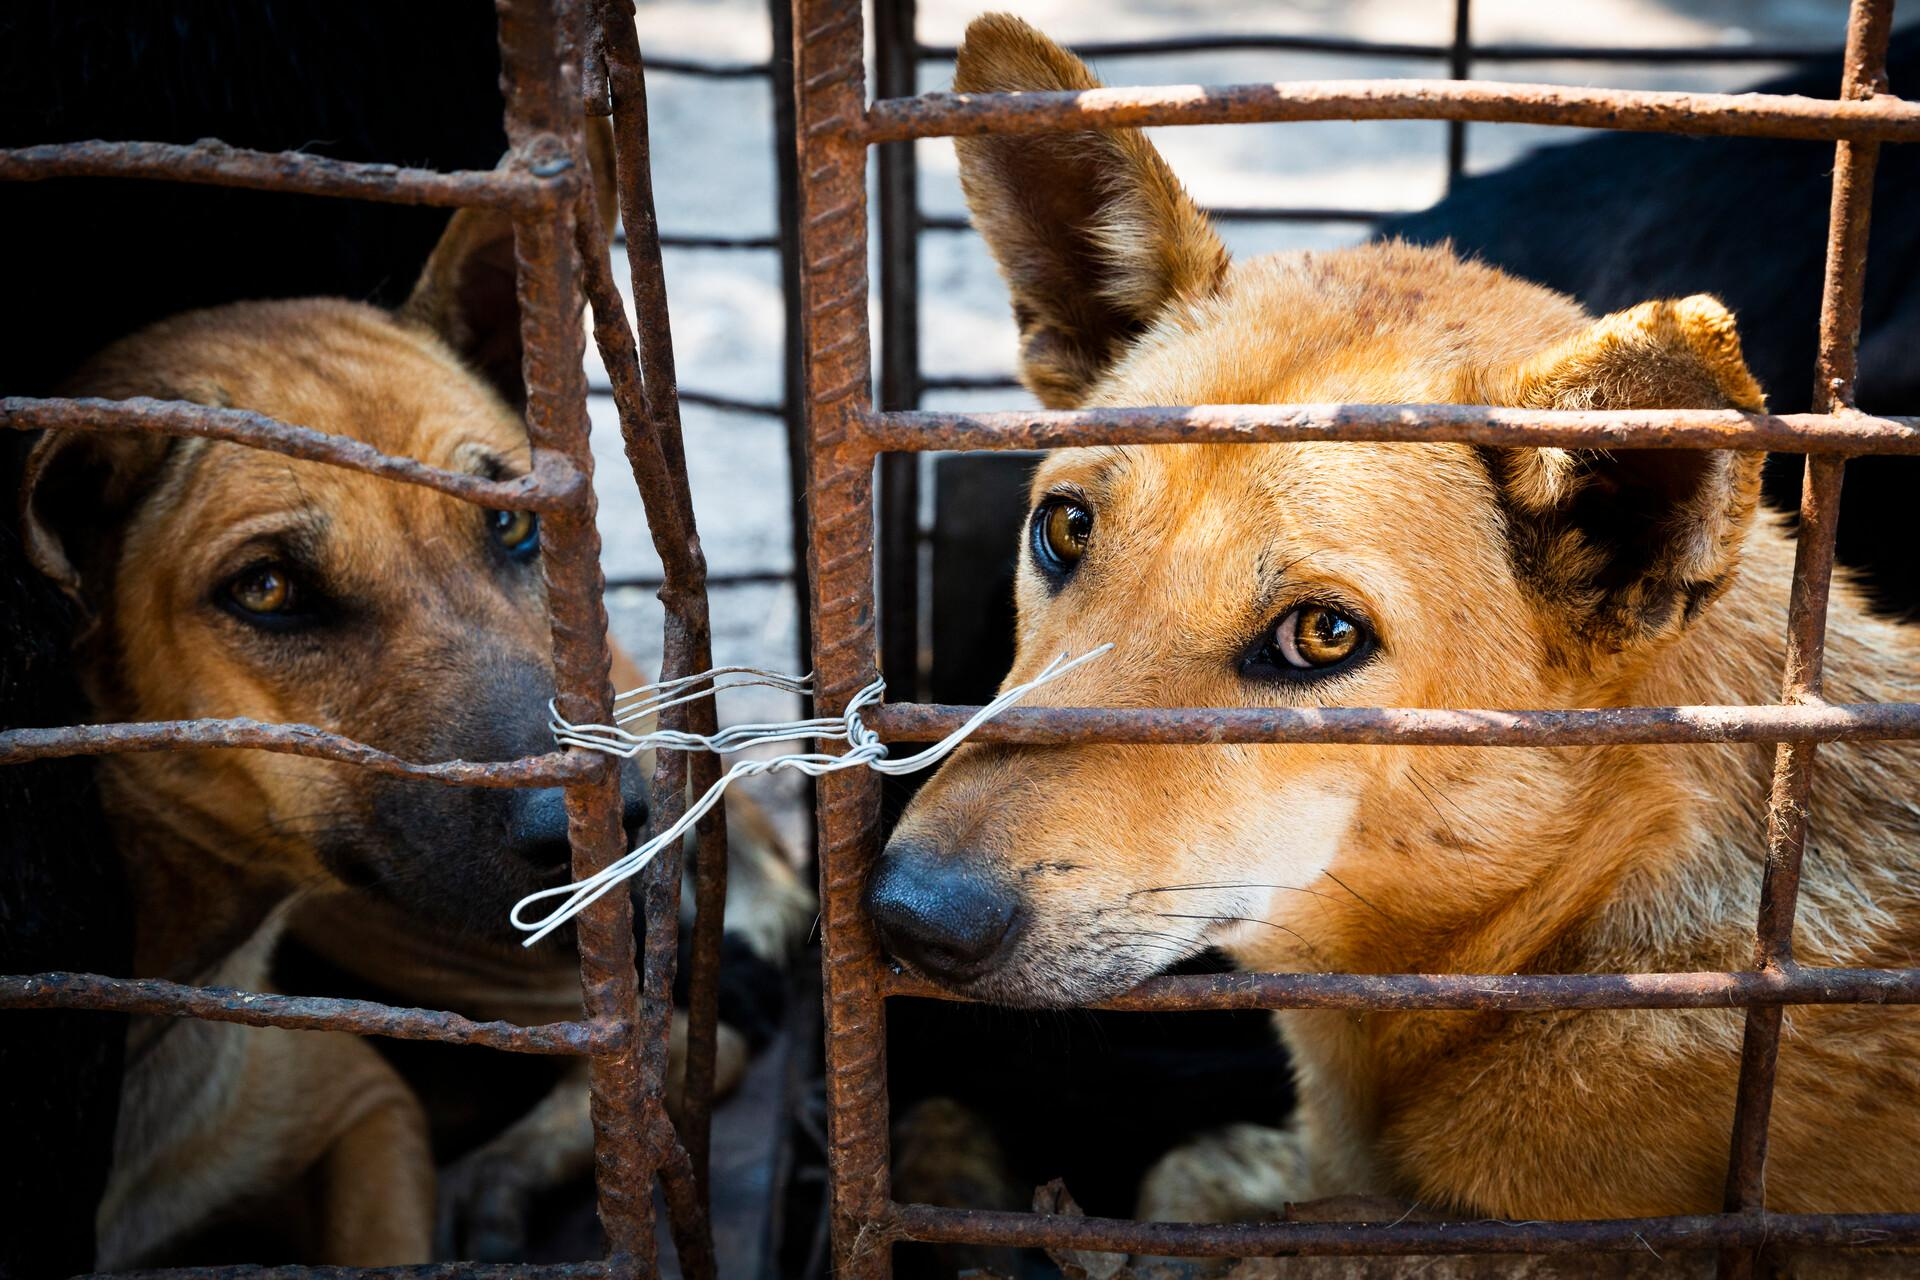 Help for Stray Animals - Topics - Campaigns & Topics - FOUR